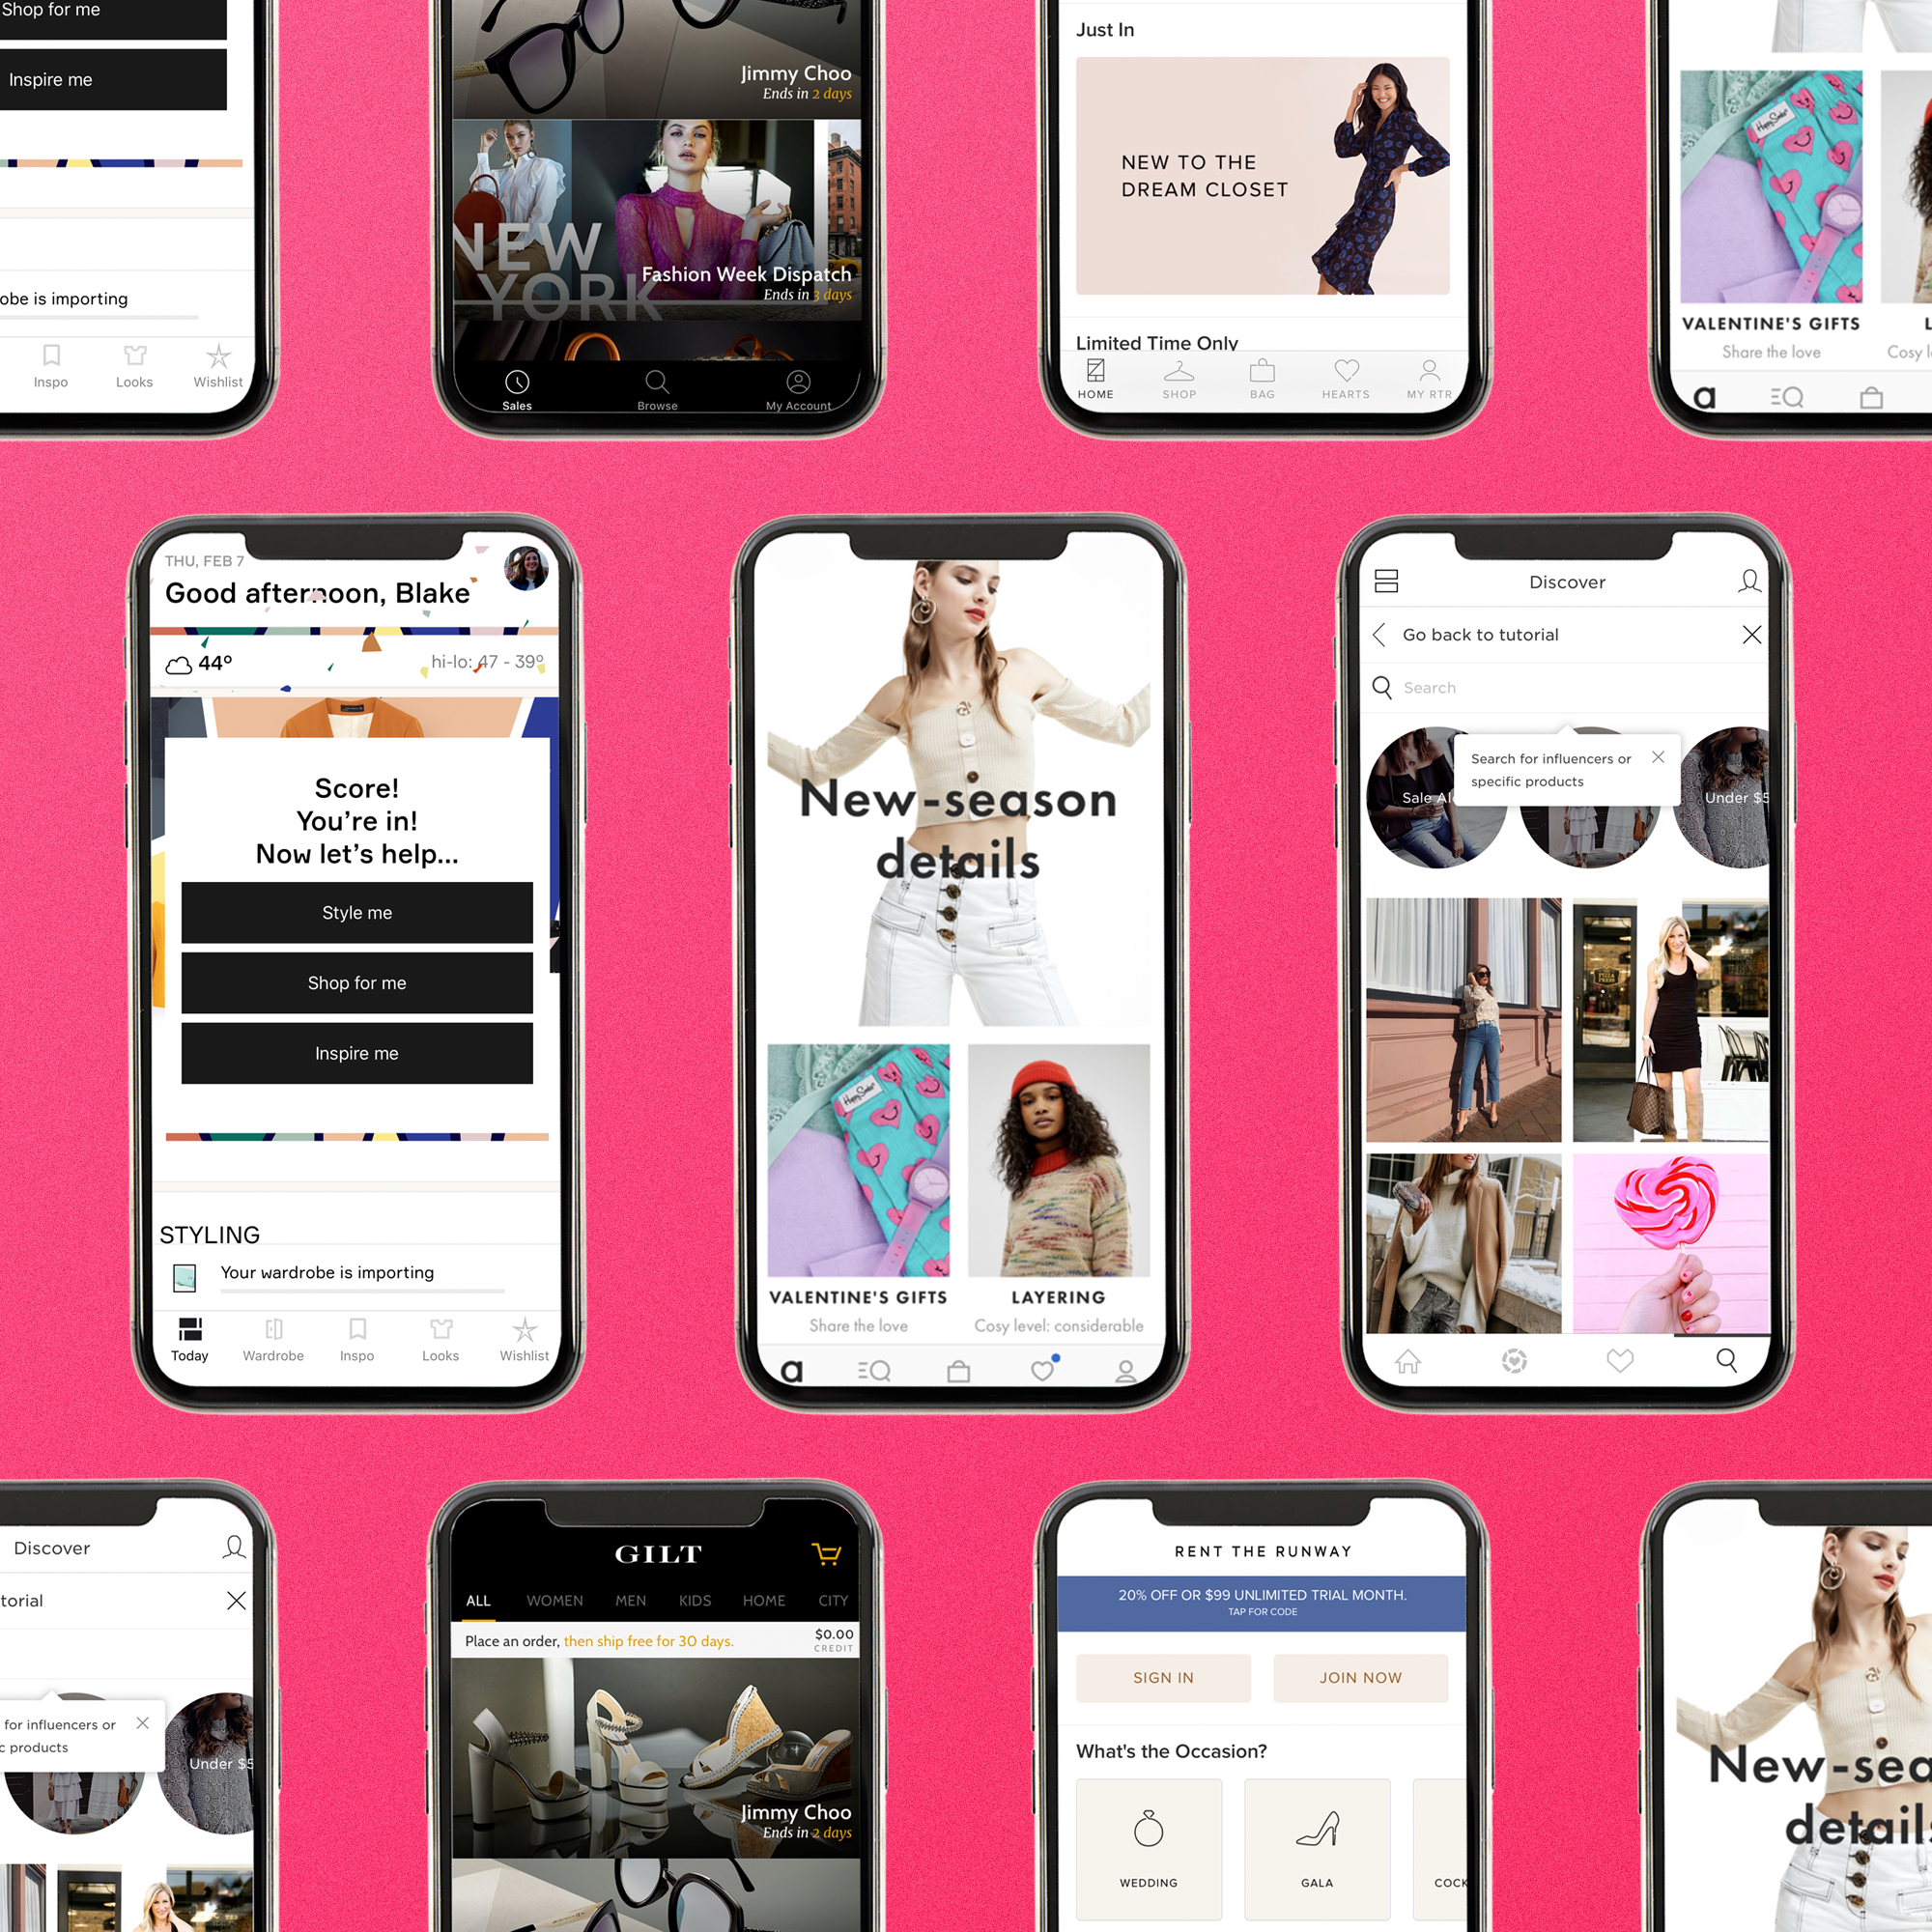 16 Best Clothing Apps to Shop Online 2019 - Top Fashion